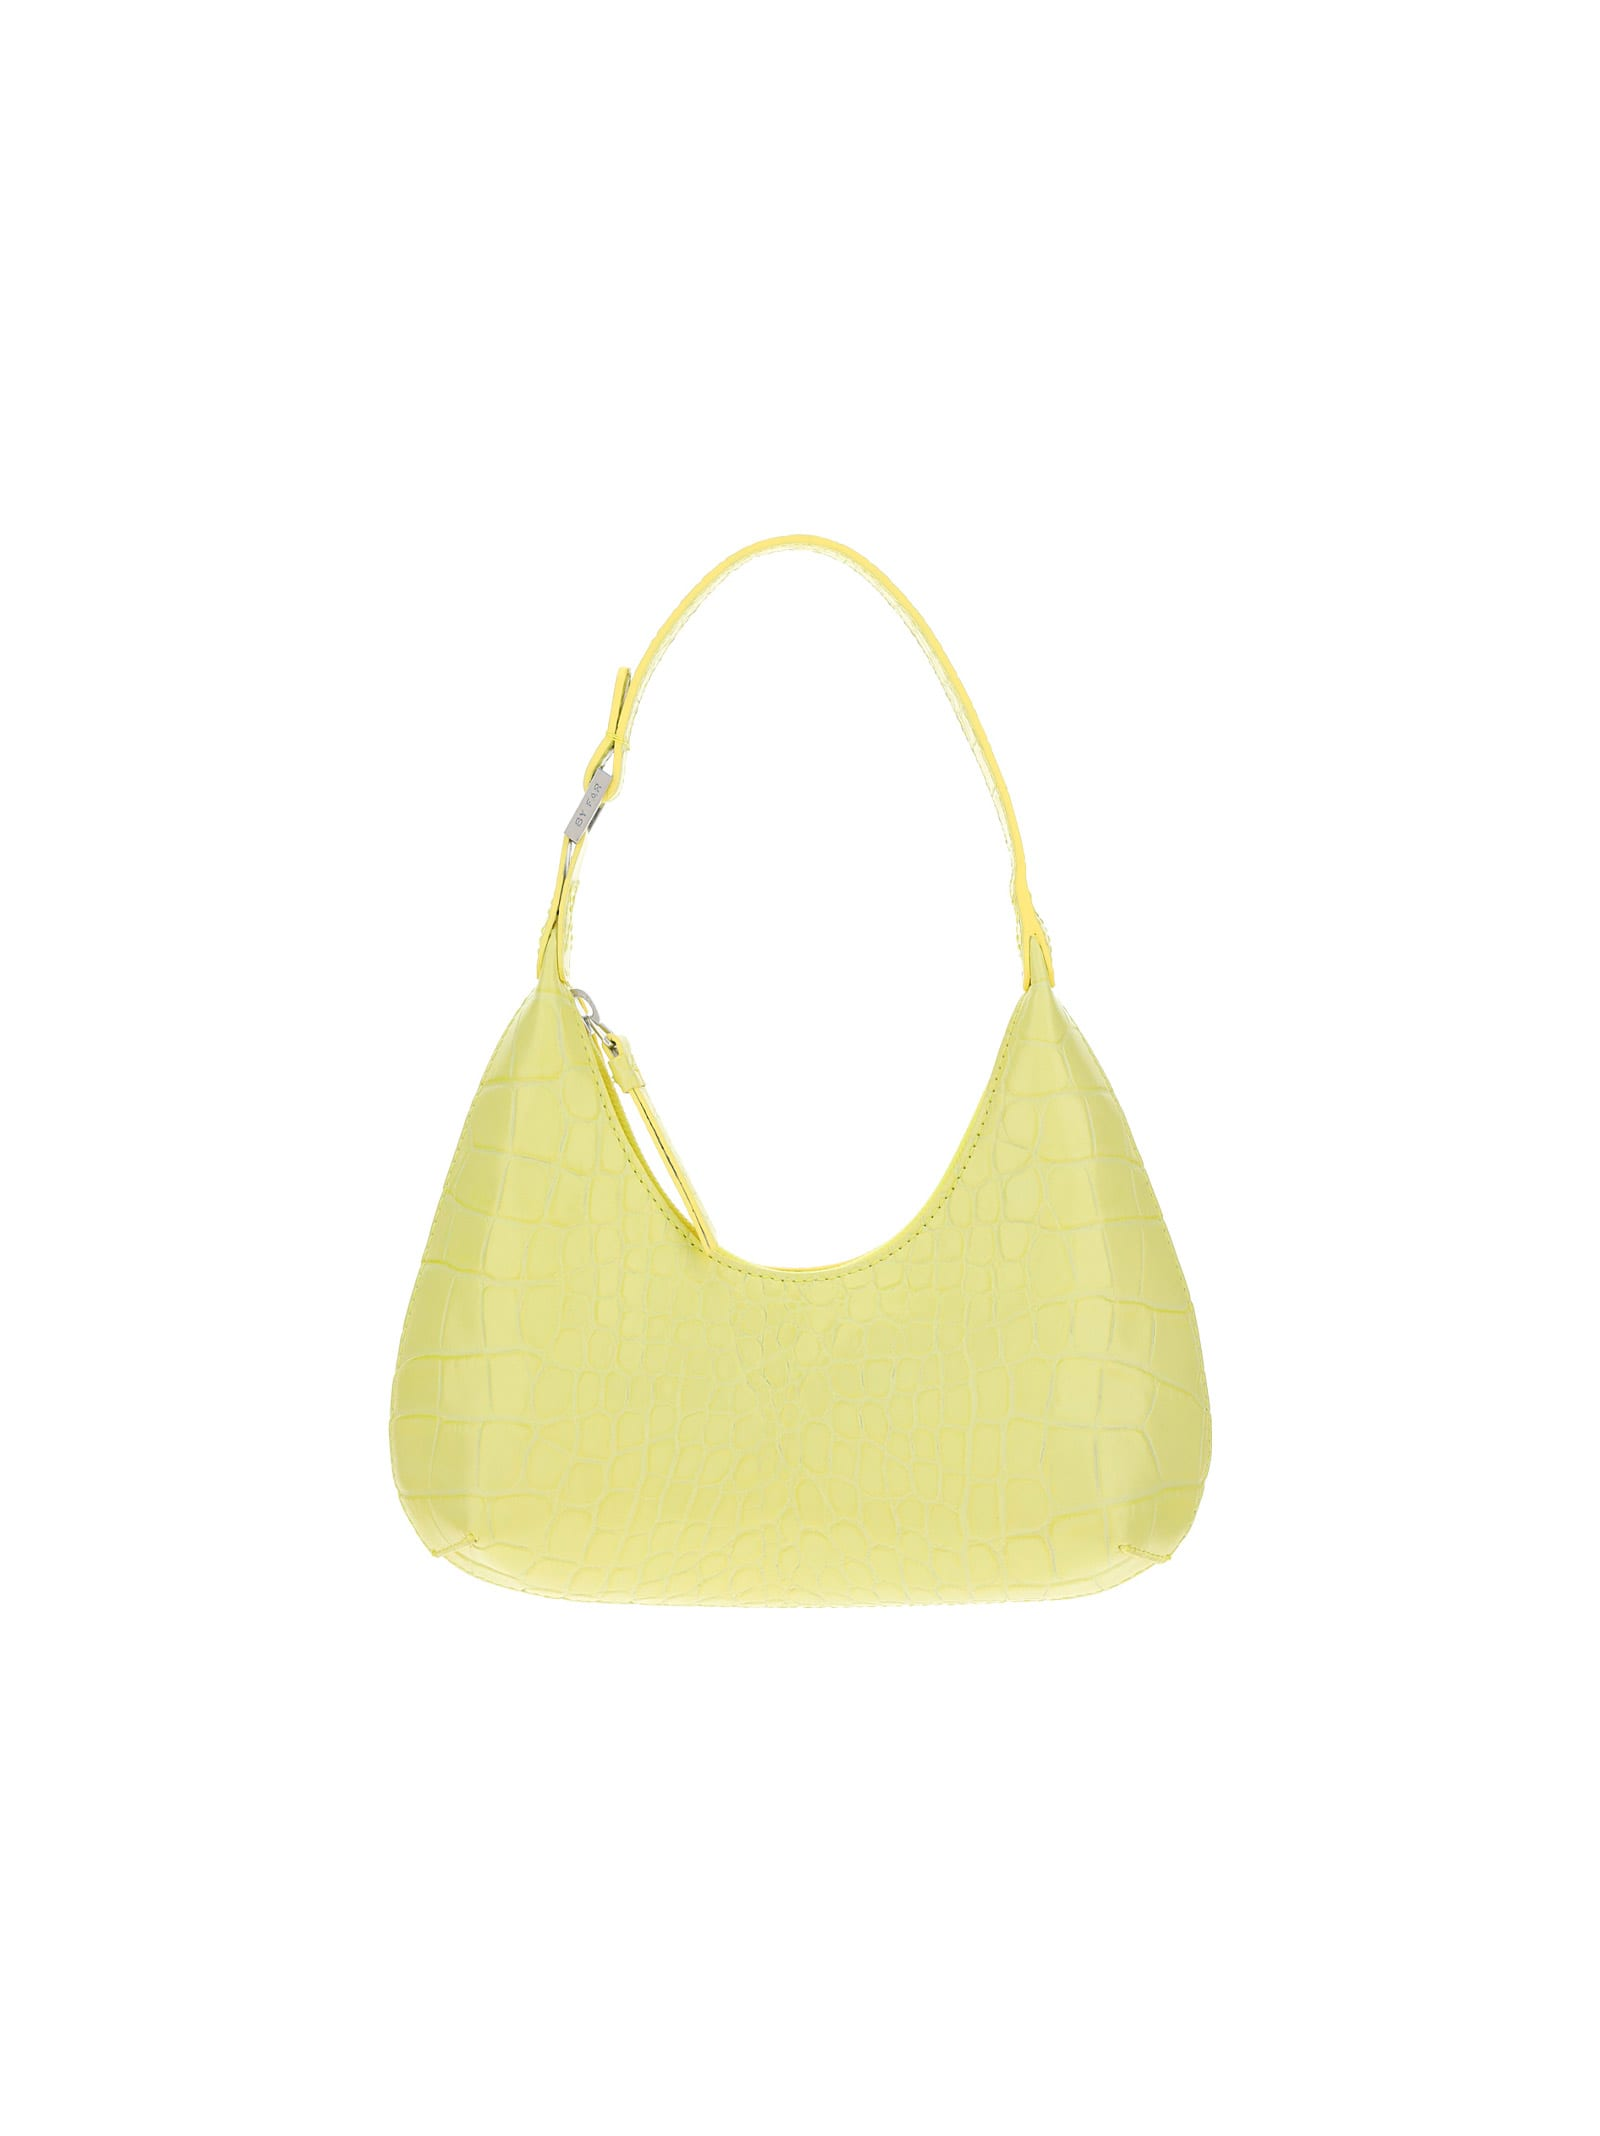 By Far Women's 21crbascusdsmacus Yellow Other Materials Shoulder Bag In Custard